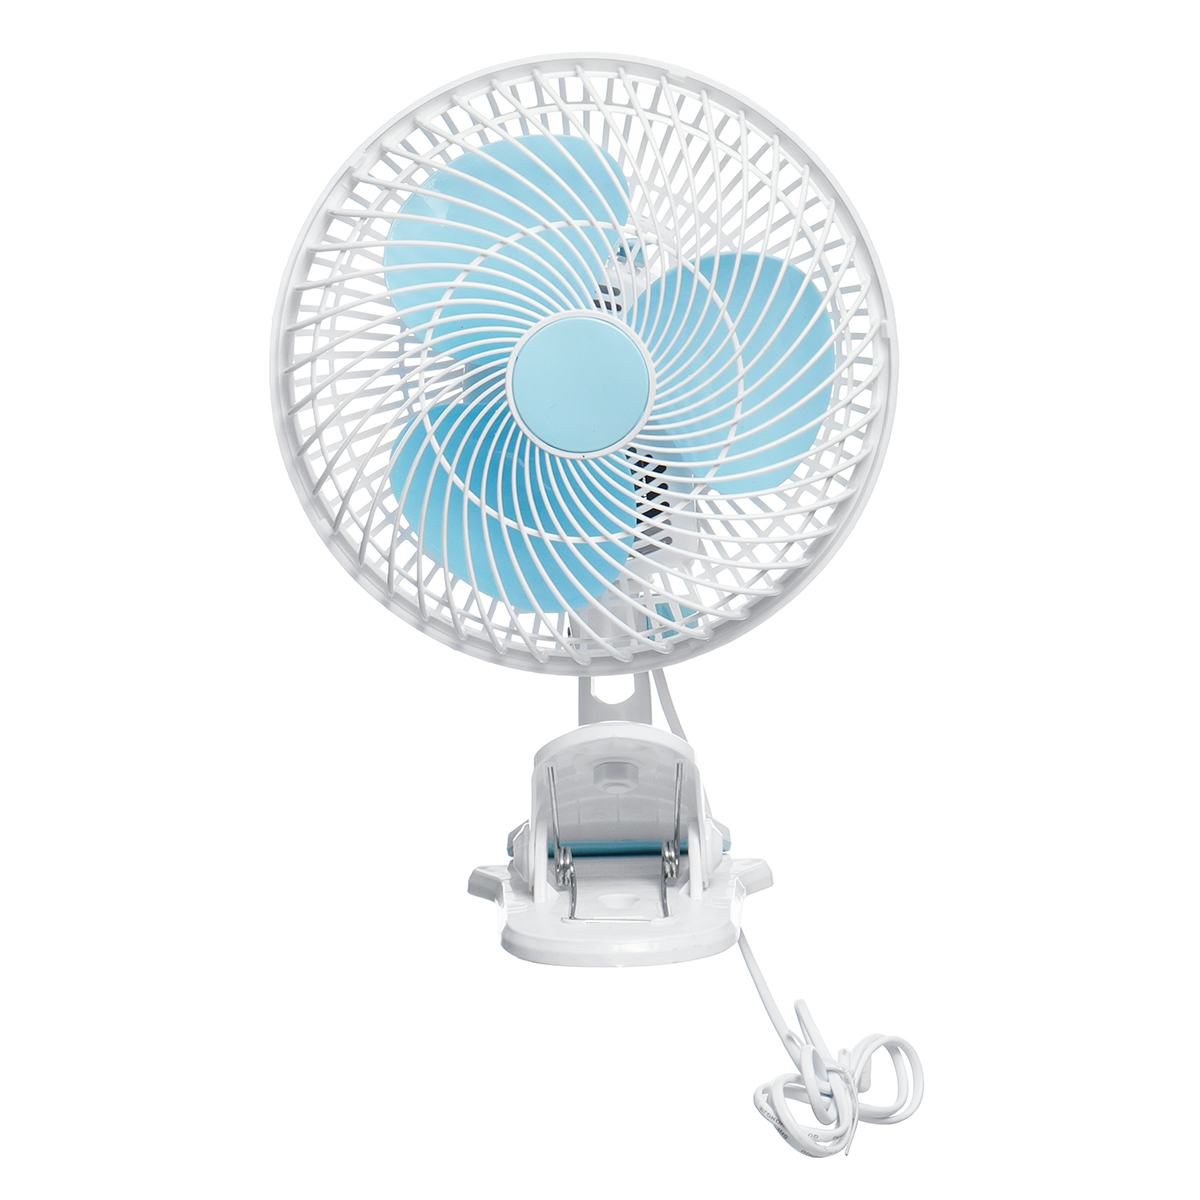 220V 180 Degree Adjustable Mini Desktop Fan High-Speed Air Desk And Clip On Fan With Fan Head Clamp For Dormitory Office